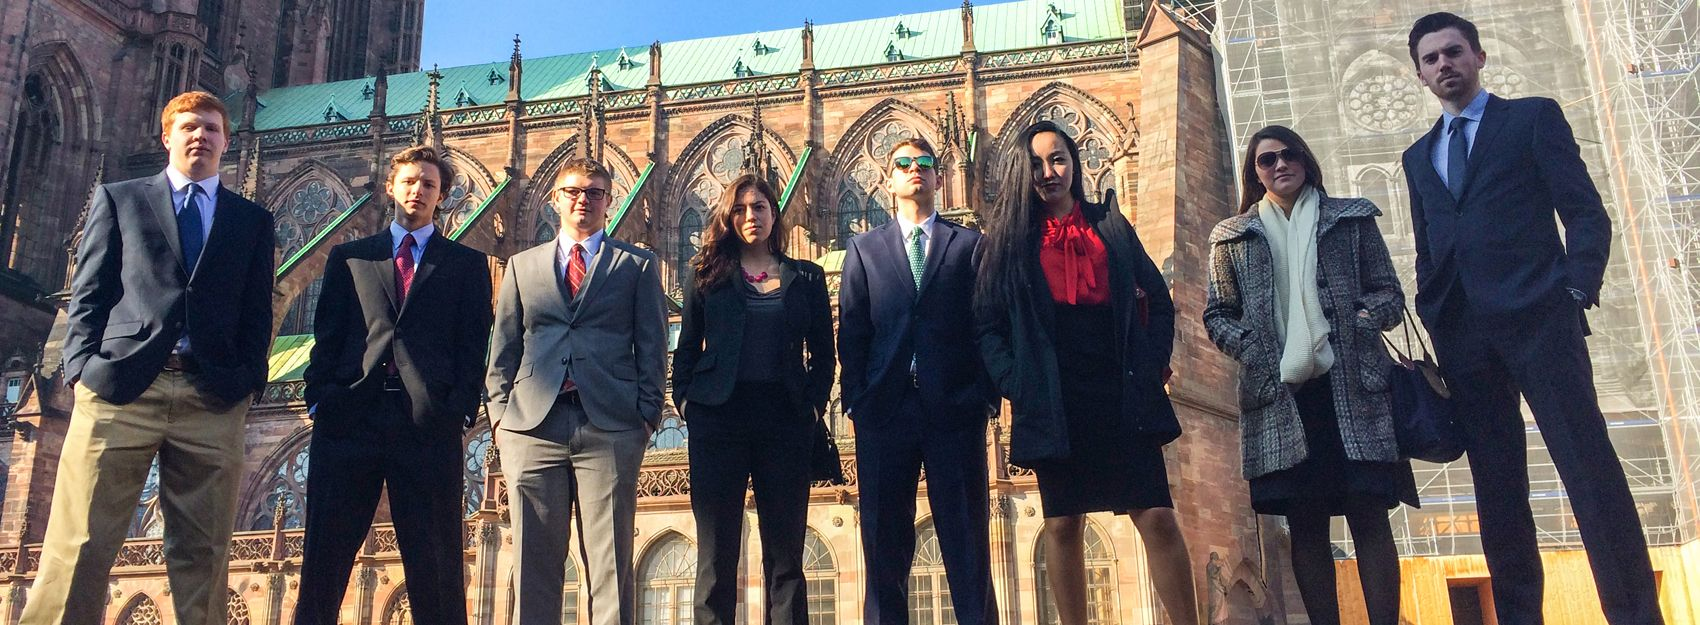 Group of Students in Suits on a Study Abroad Program